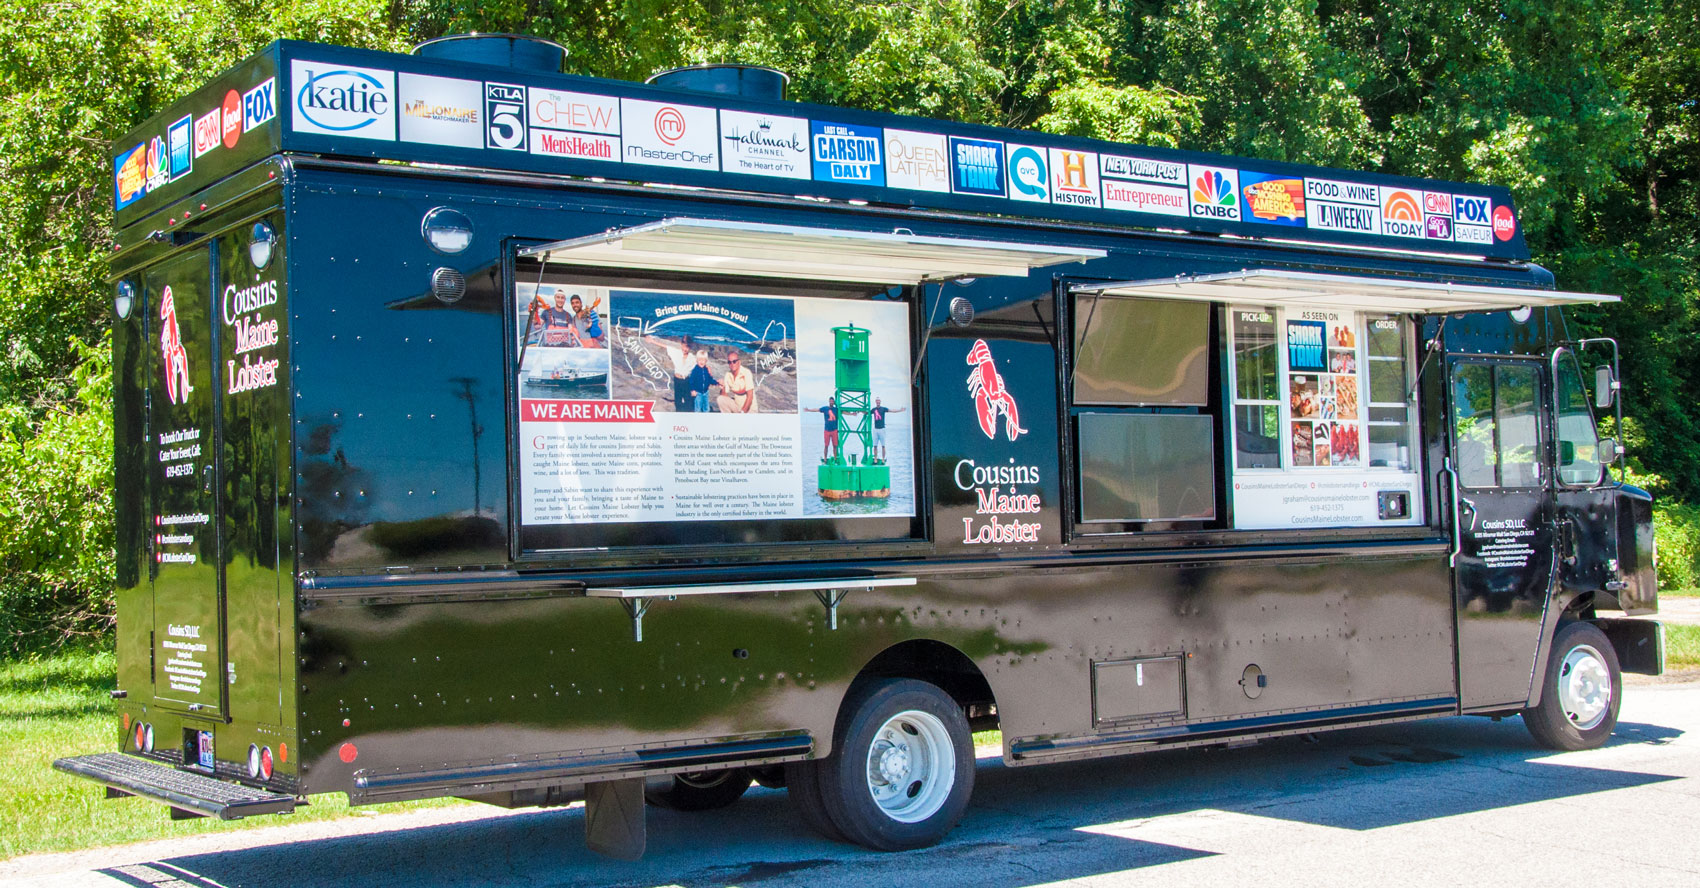 Food Trucks For Sale Near Me >> Cousins Maine Lobster Food Truck Trailer New Food Truck For Sale